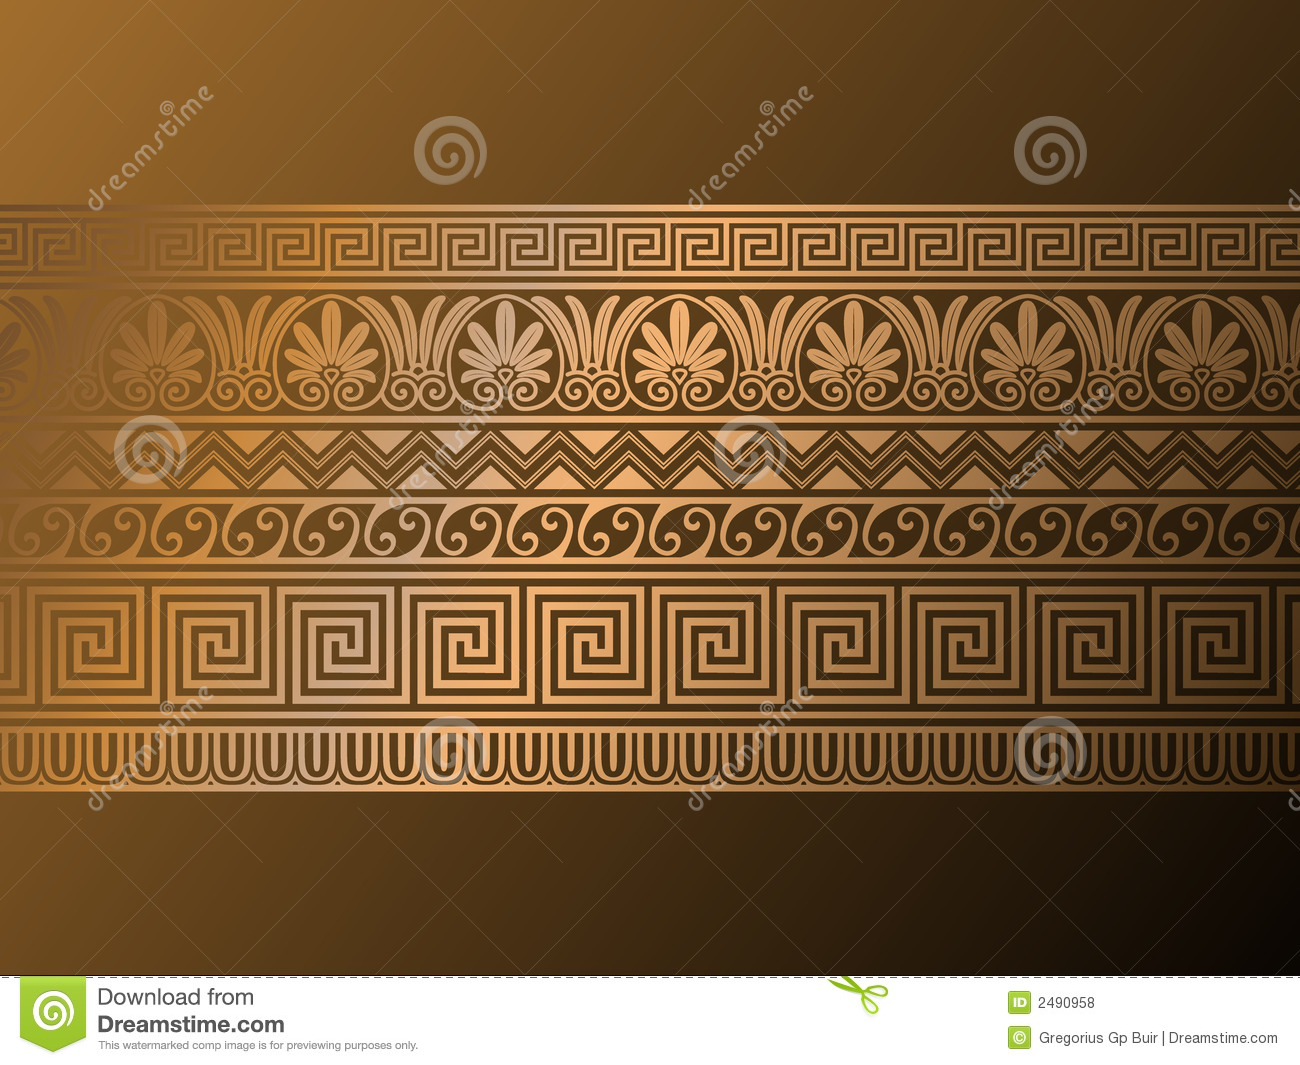 Ancient greek ornaments royalty free stock photos image for Ancient greek decoration